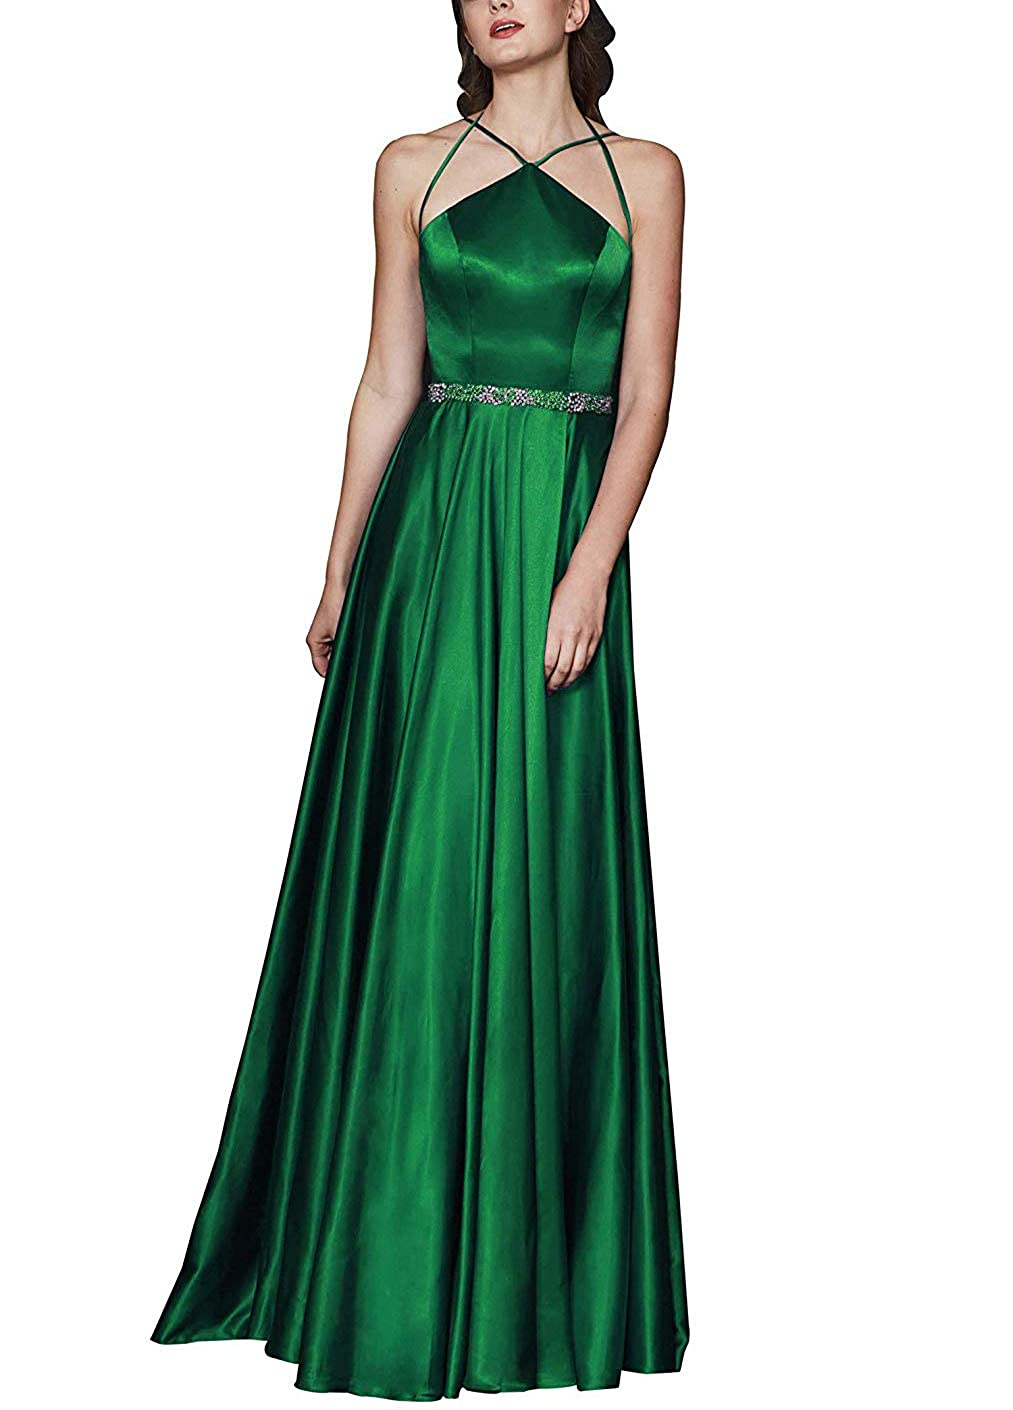 Emerald Green Elegant Beaded Halter Satin Long Prom Dresses Formal Evening Celebrity Dress